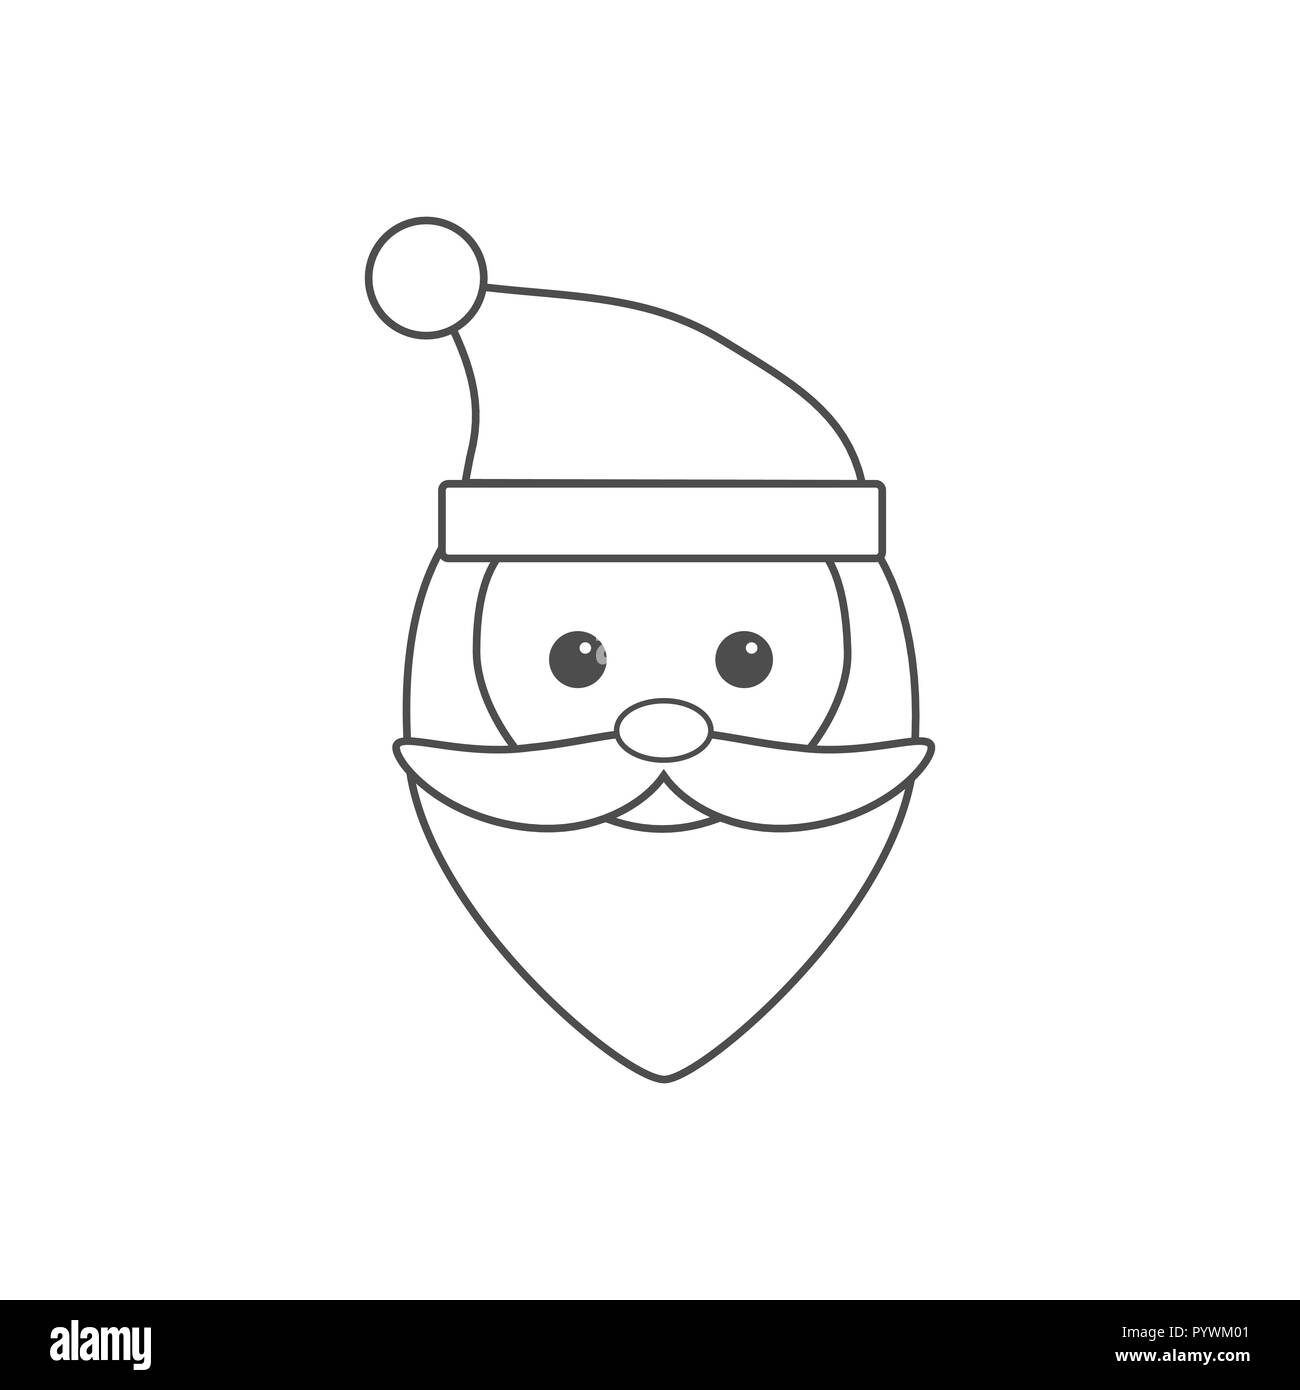 Vector Christmas Design With Santa Claus Illustration Christmas Sale Concept Design Best For Poster Advert Or Social Media Post Stock Vector Image Art Alamy